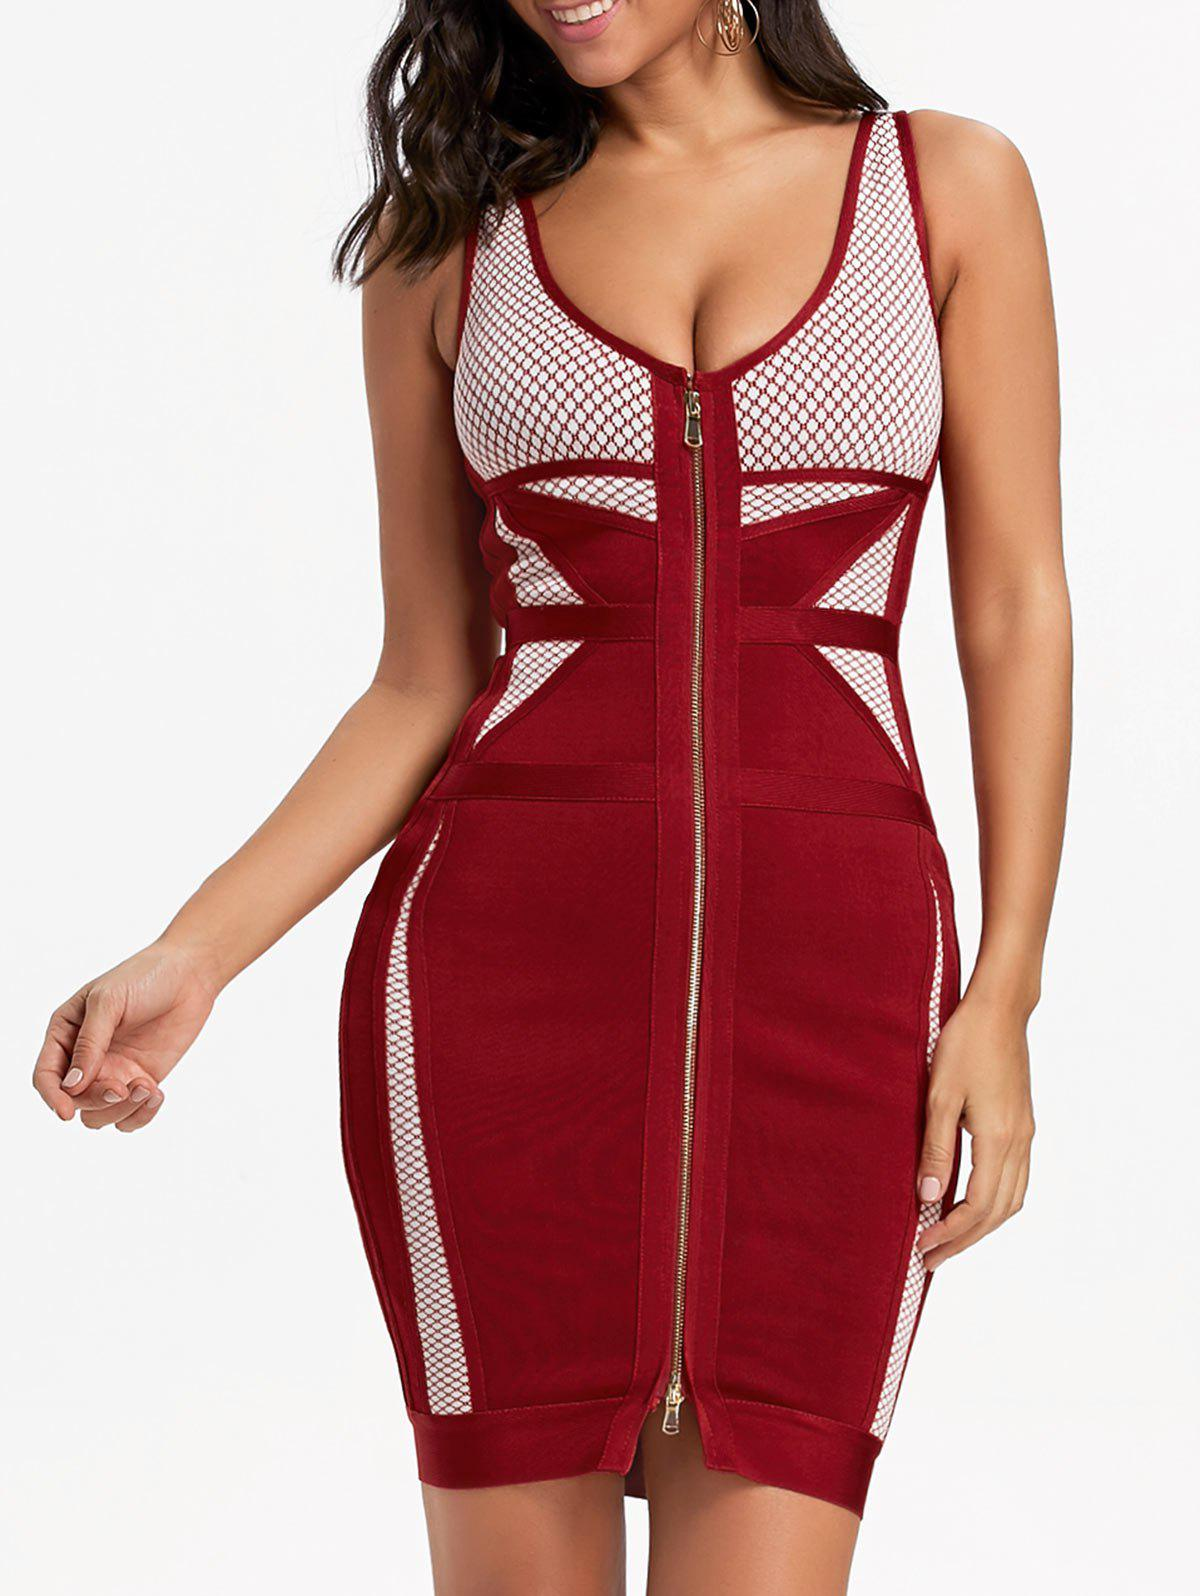 Sleeveless Night Out Bandage Dress - RED L